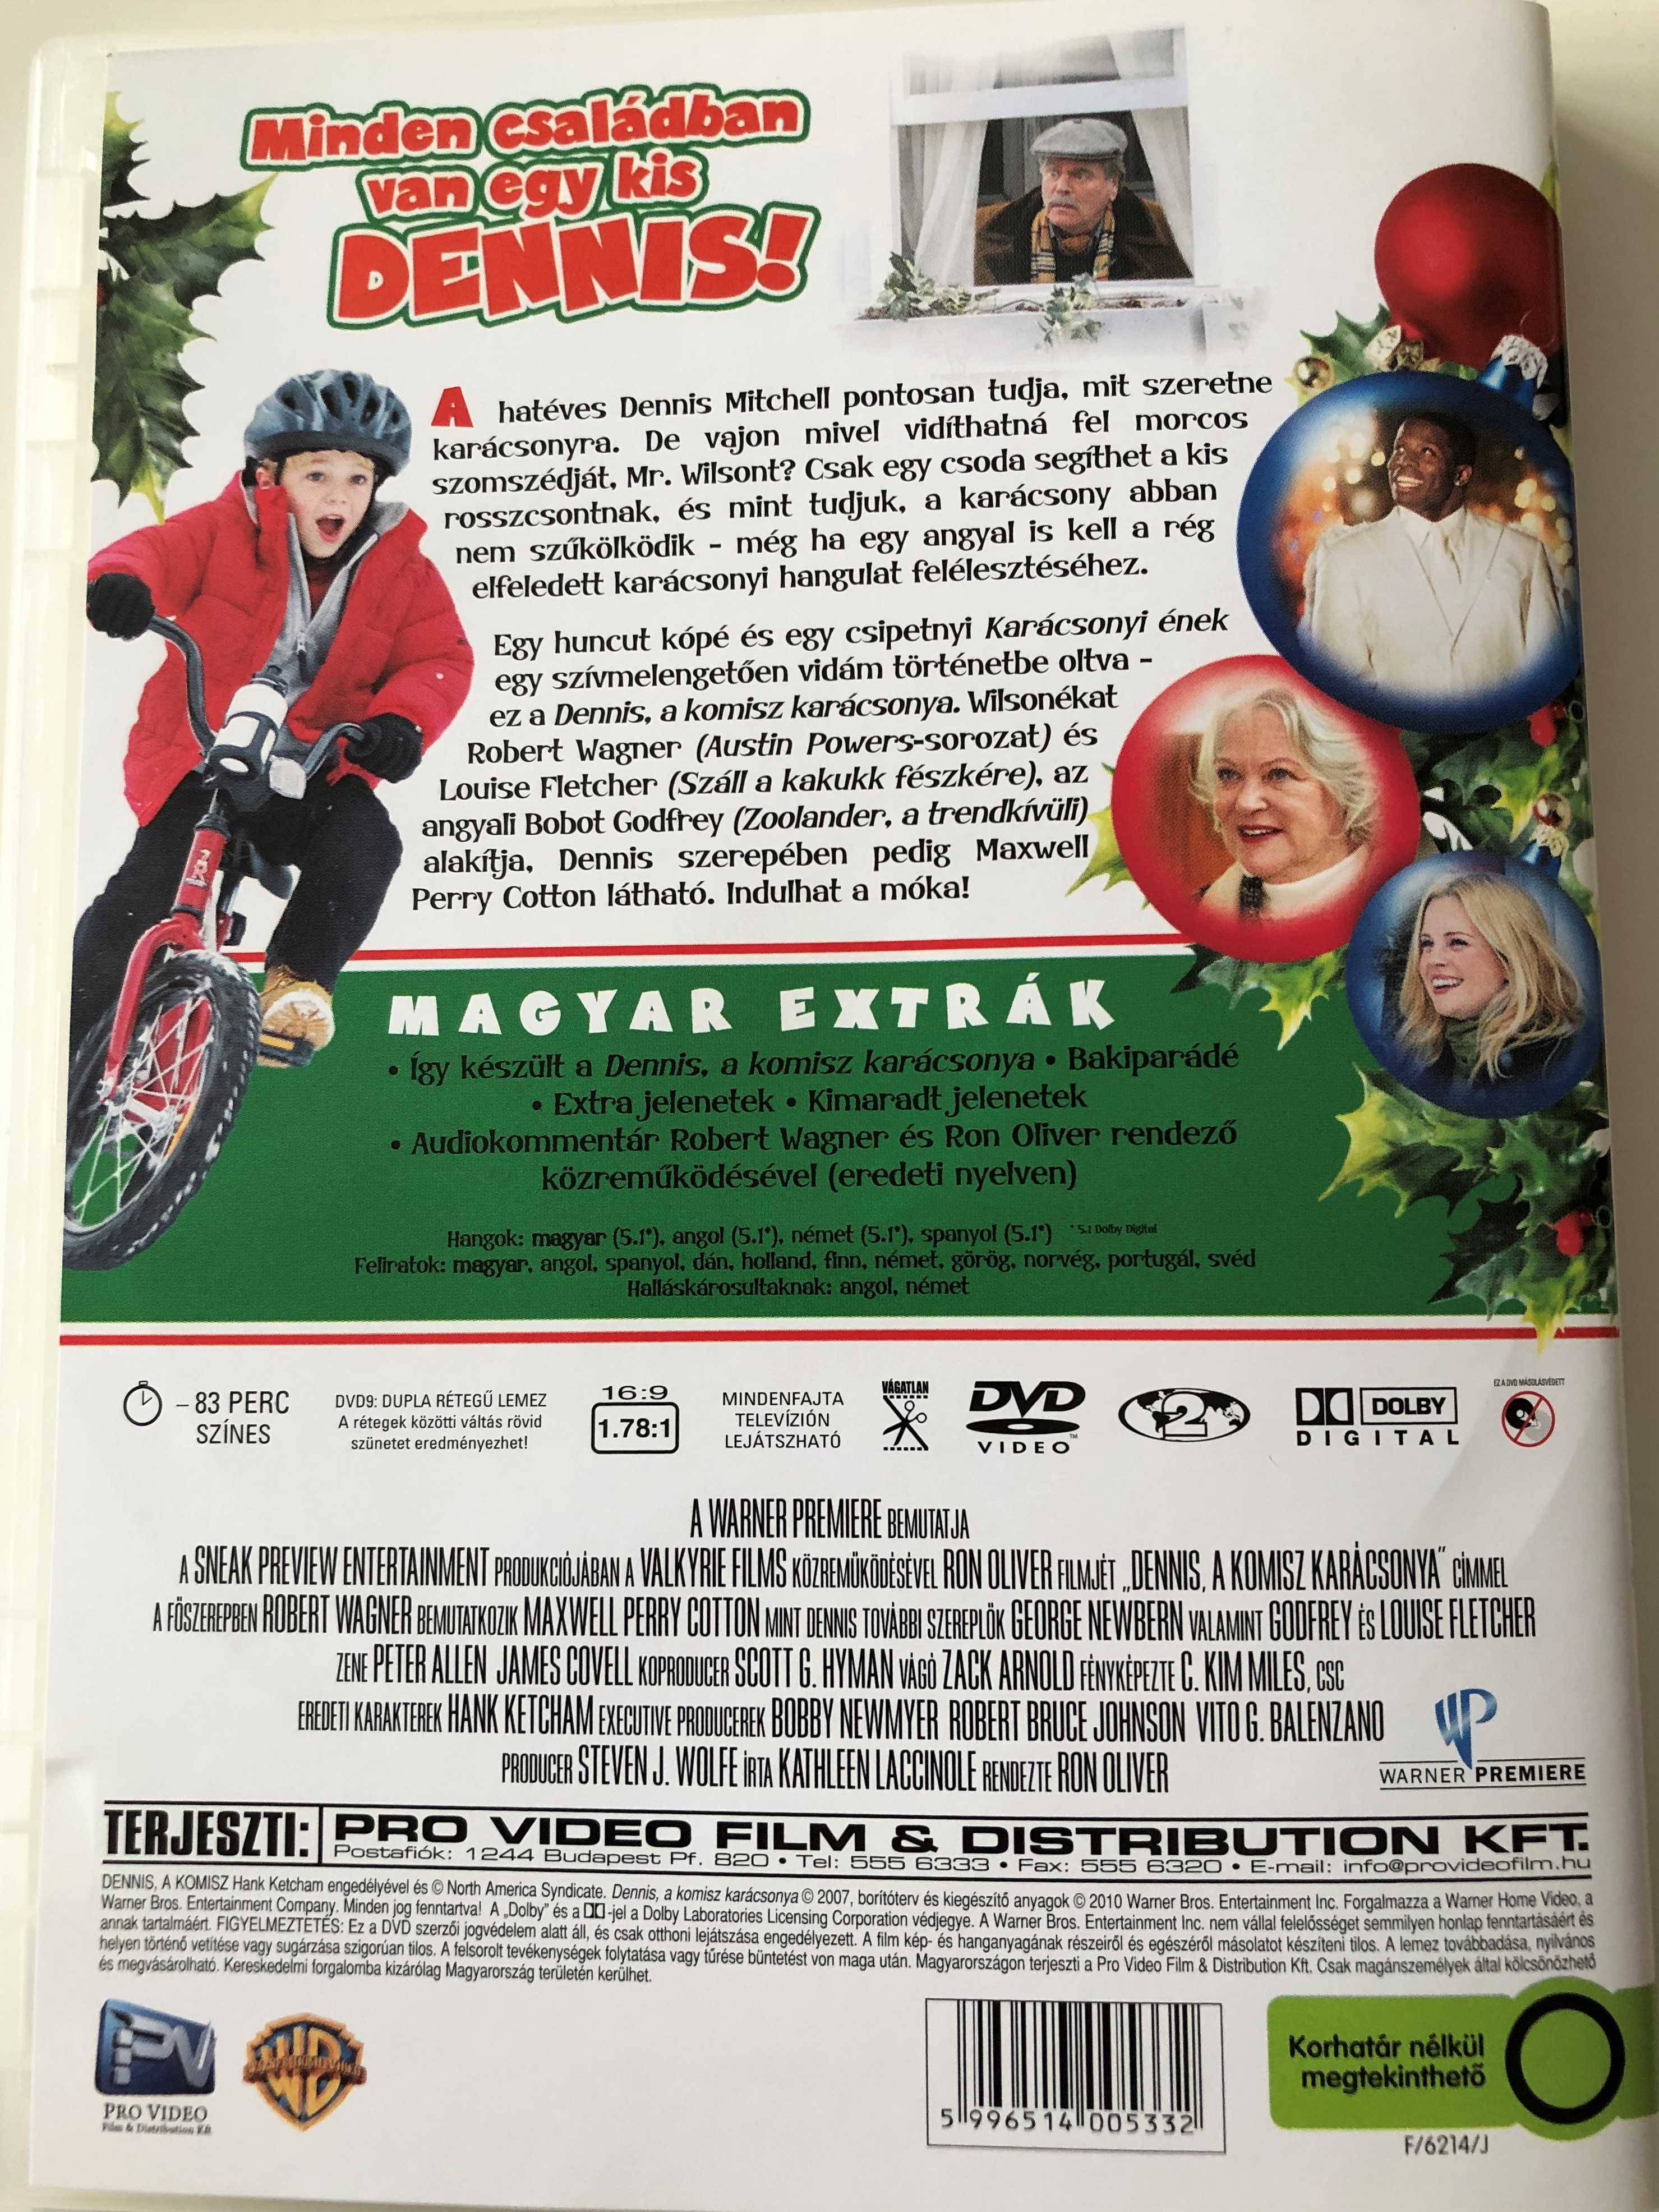 A Dennis The Menace Christmas.A Dennis The Menace Christmas Dvd 2007 Dennis A Komisz Karacsonya Directed By Ron Oliver Starring Robert Wagner Louise Fletcher Maxwell Perry